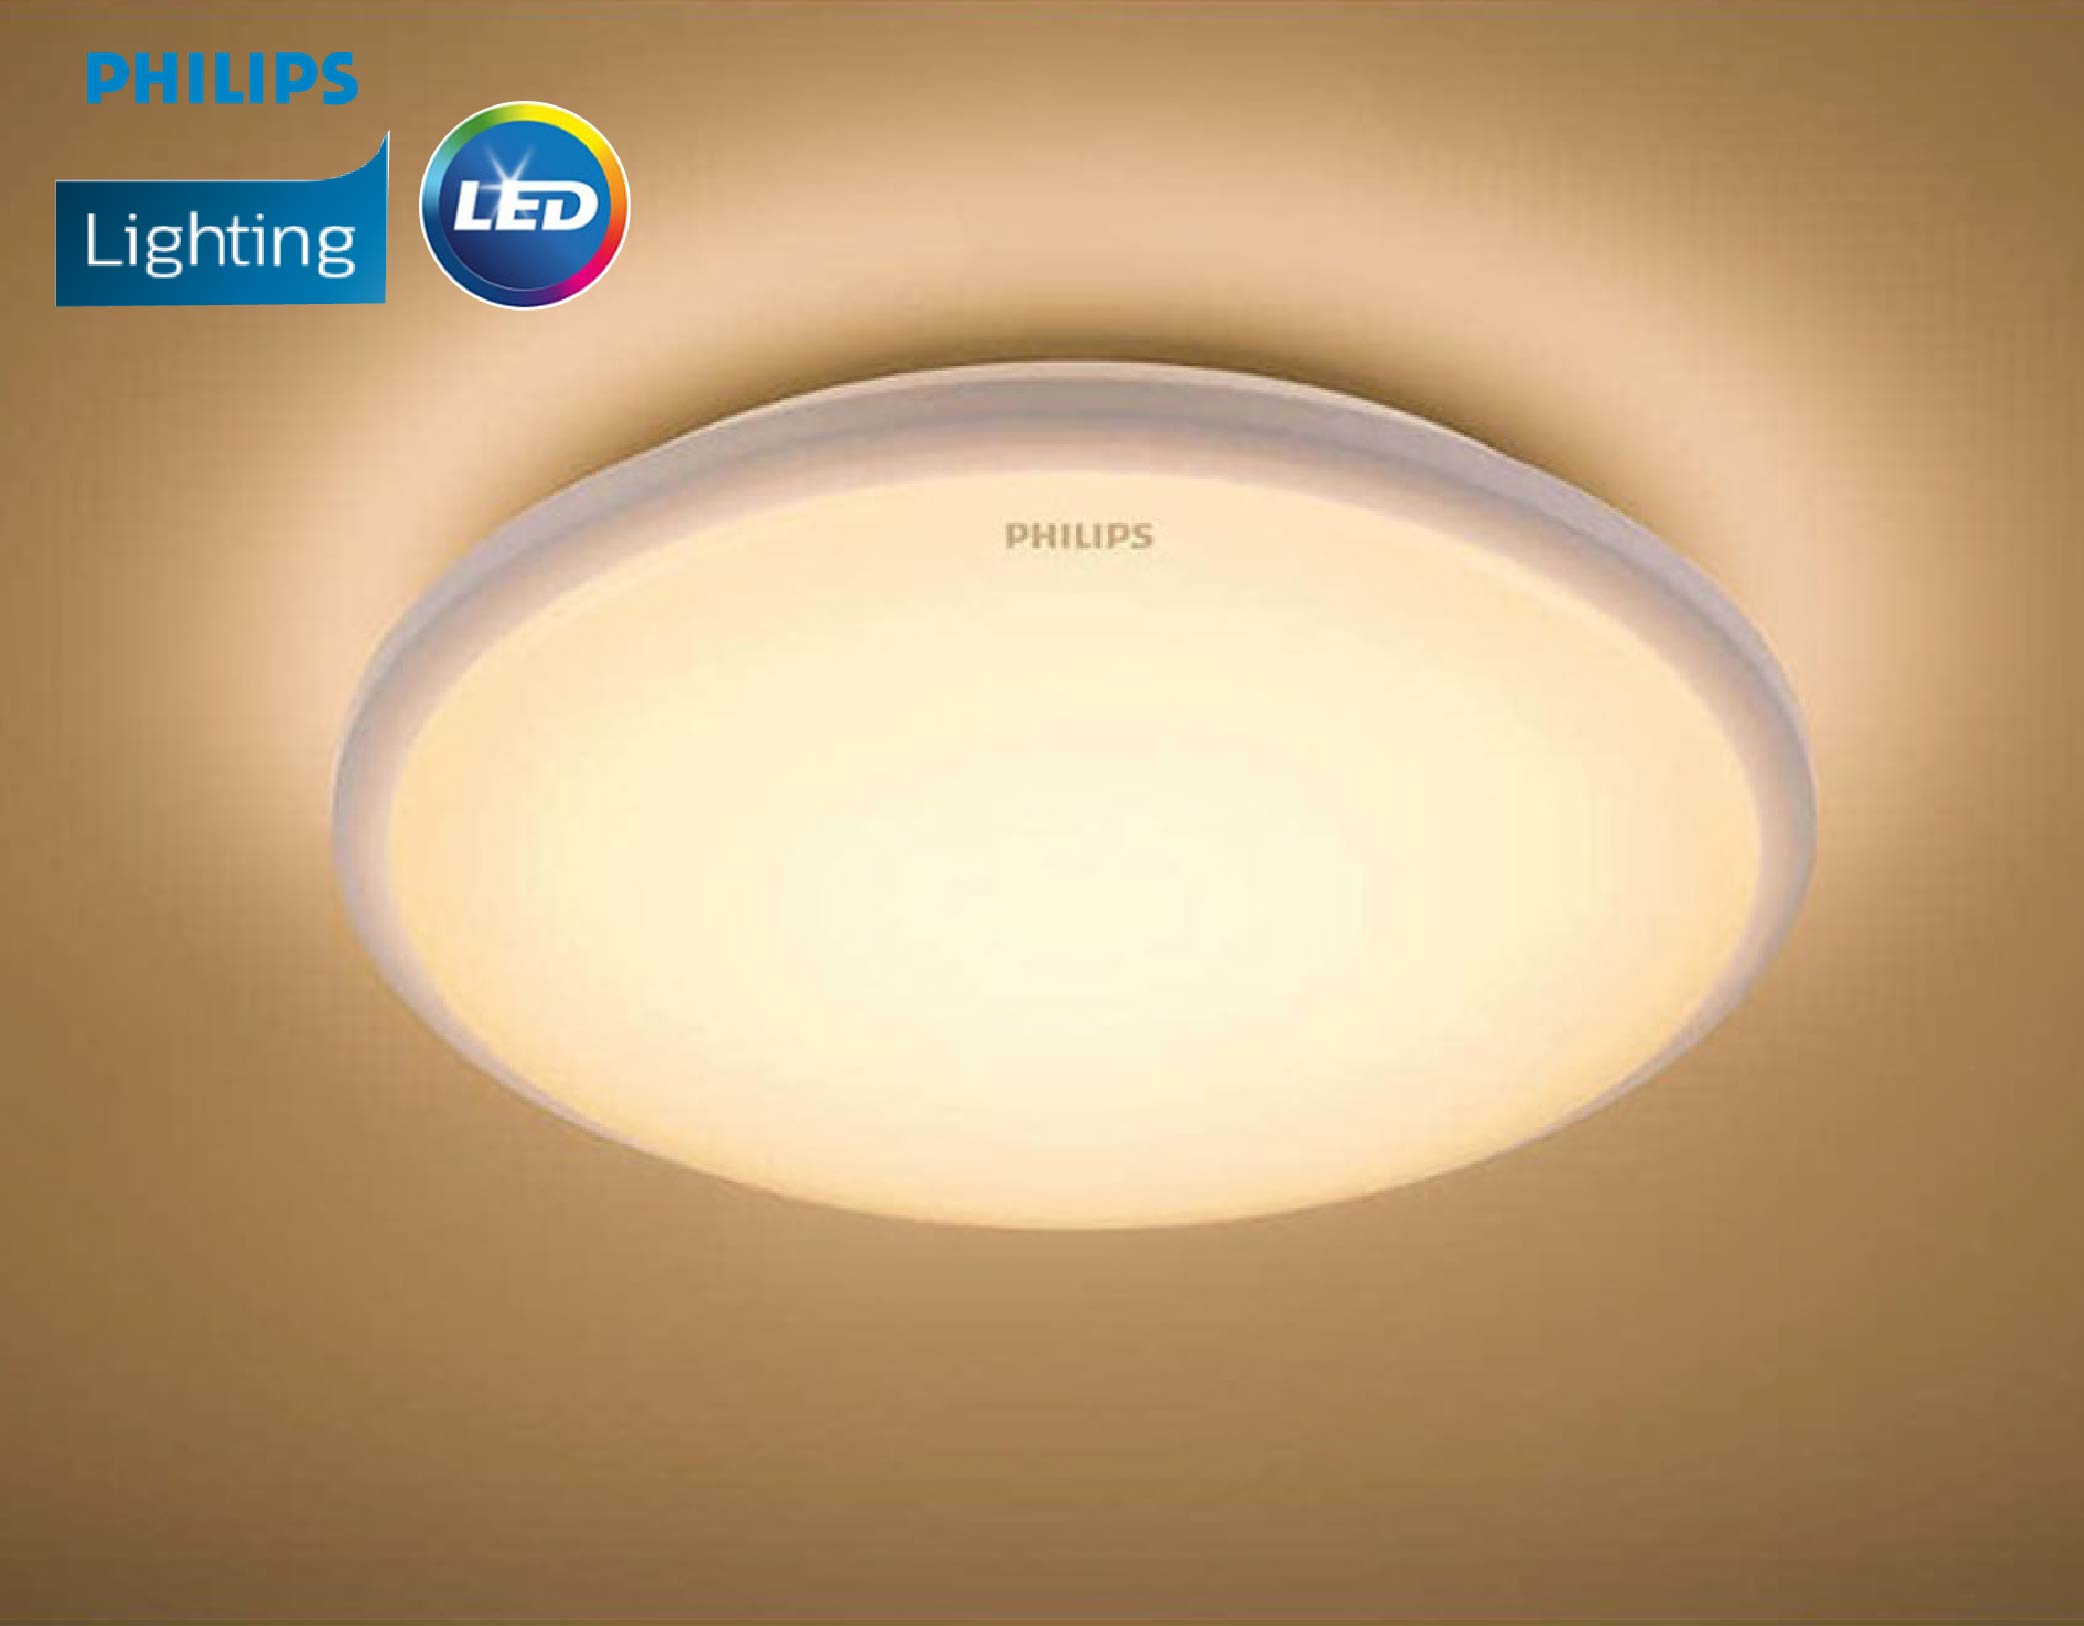 Philips 33369 65k 27k Cool Daylight Warm White 10w 650lm Moire Round Led Essential Ceiling Light